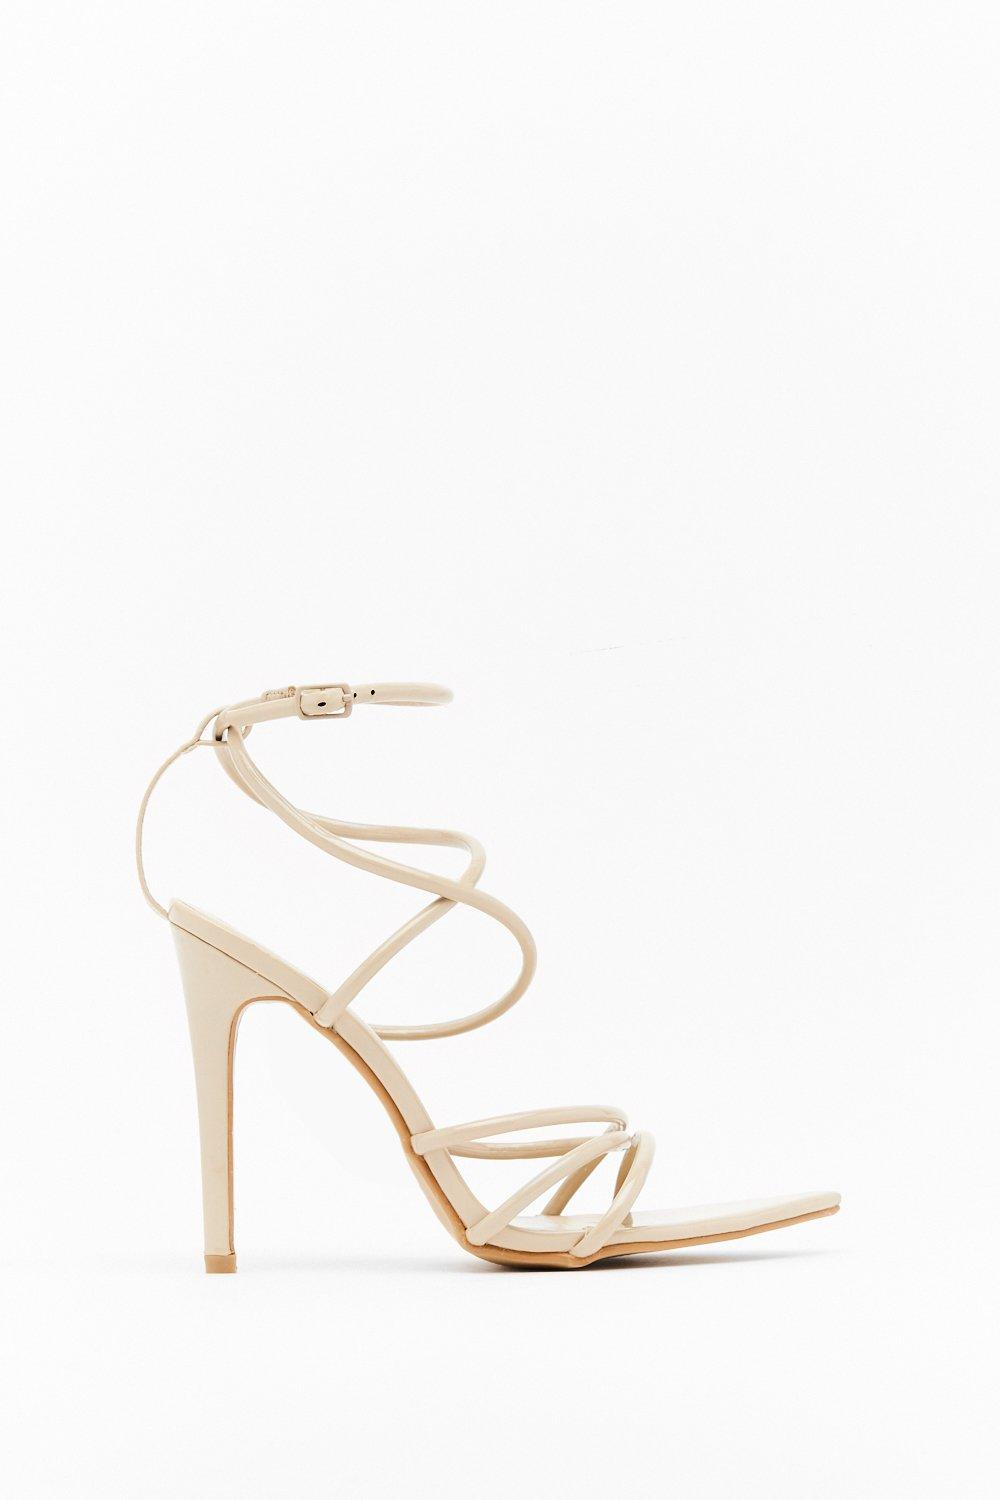 Image of Strappy Together Faux Leather Heels